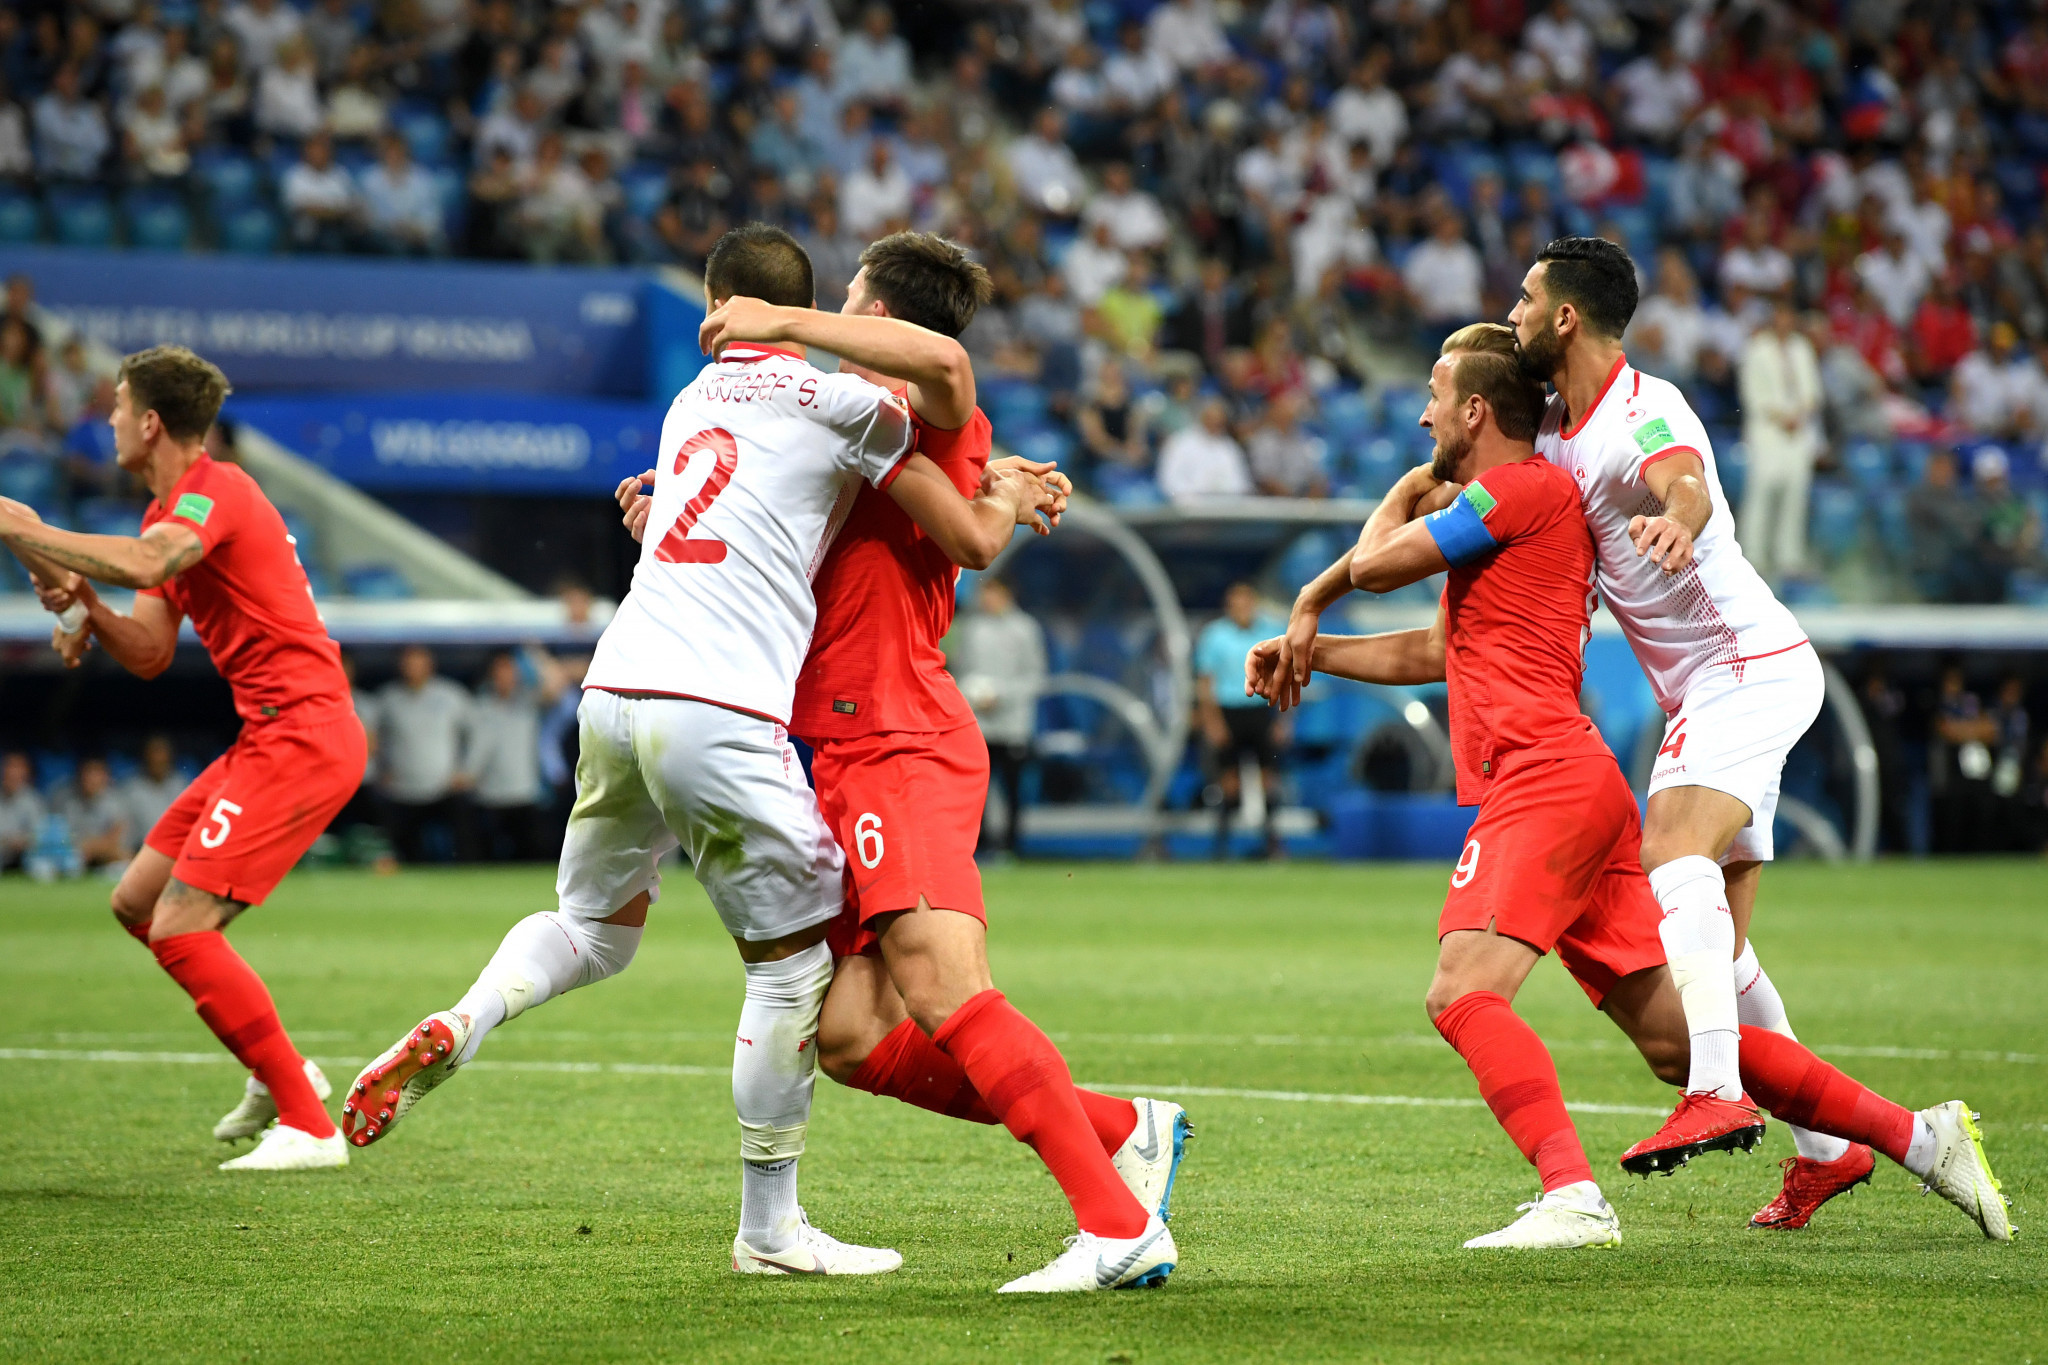 VAR received criticism during the World Cup for frequently failing to spot incidents which were seen by many as clear fouls ©Getty Images